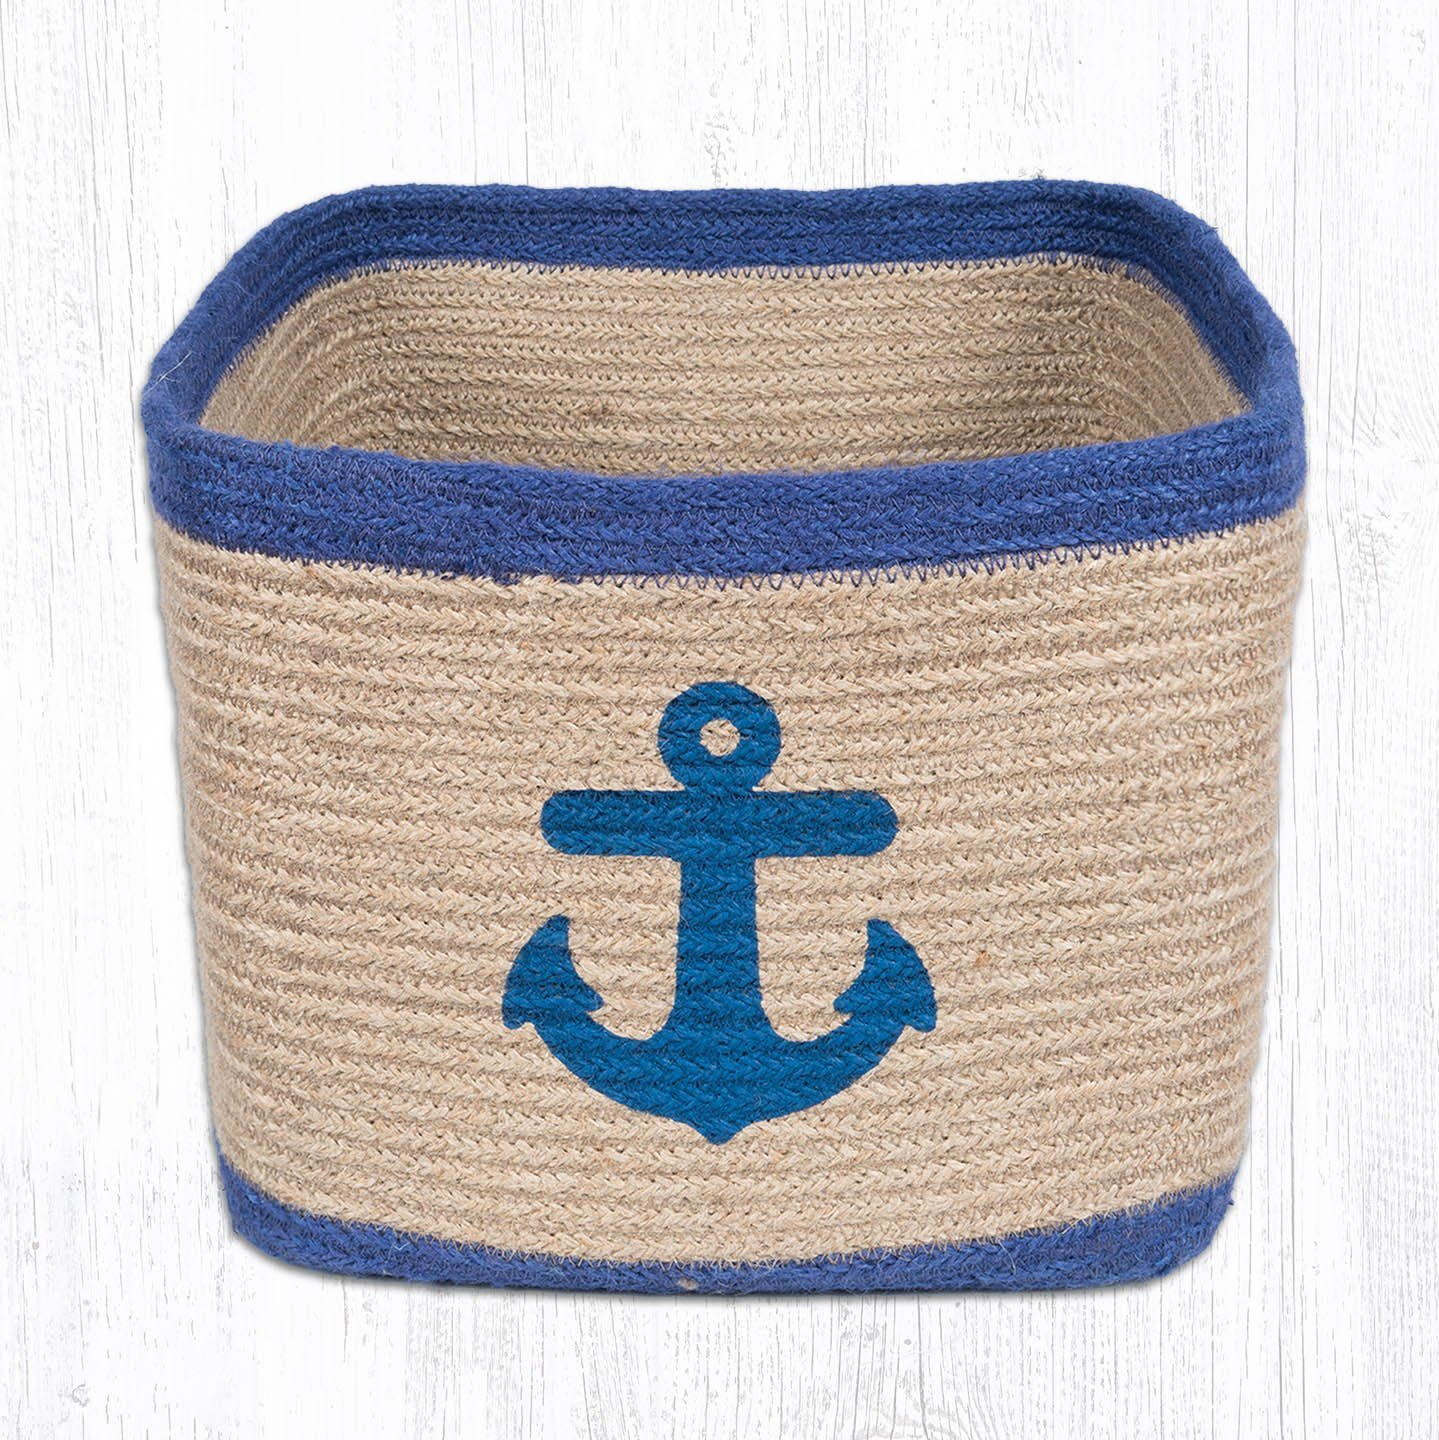 Anchor Square Printed Basket 10 in. by 10 in.